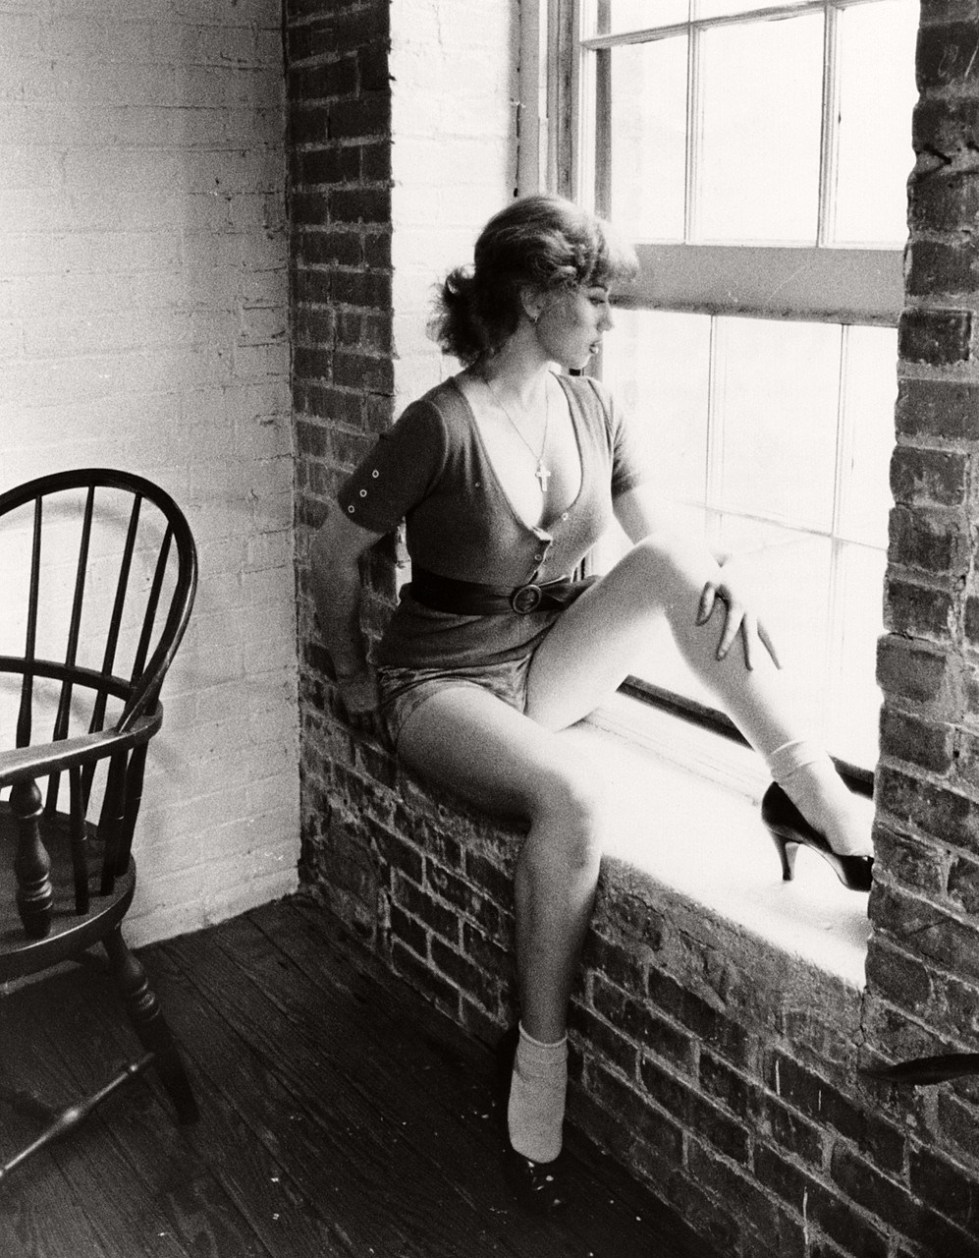 Cindy Sherman / Untitled, Film Still n. 15 (Sin título, Fotograma nº 15), 1978